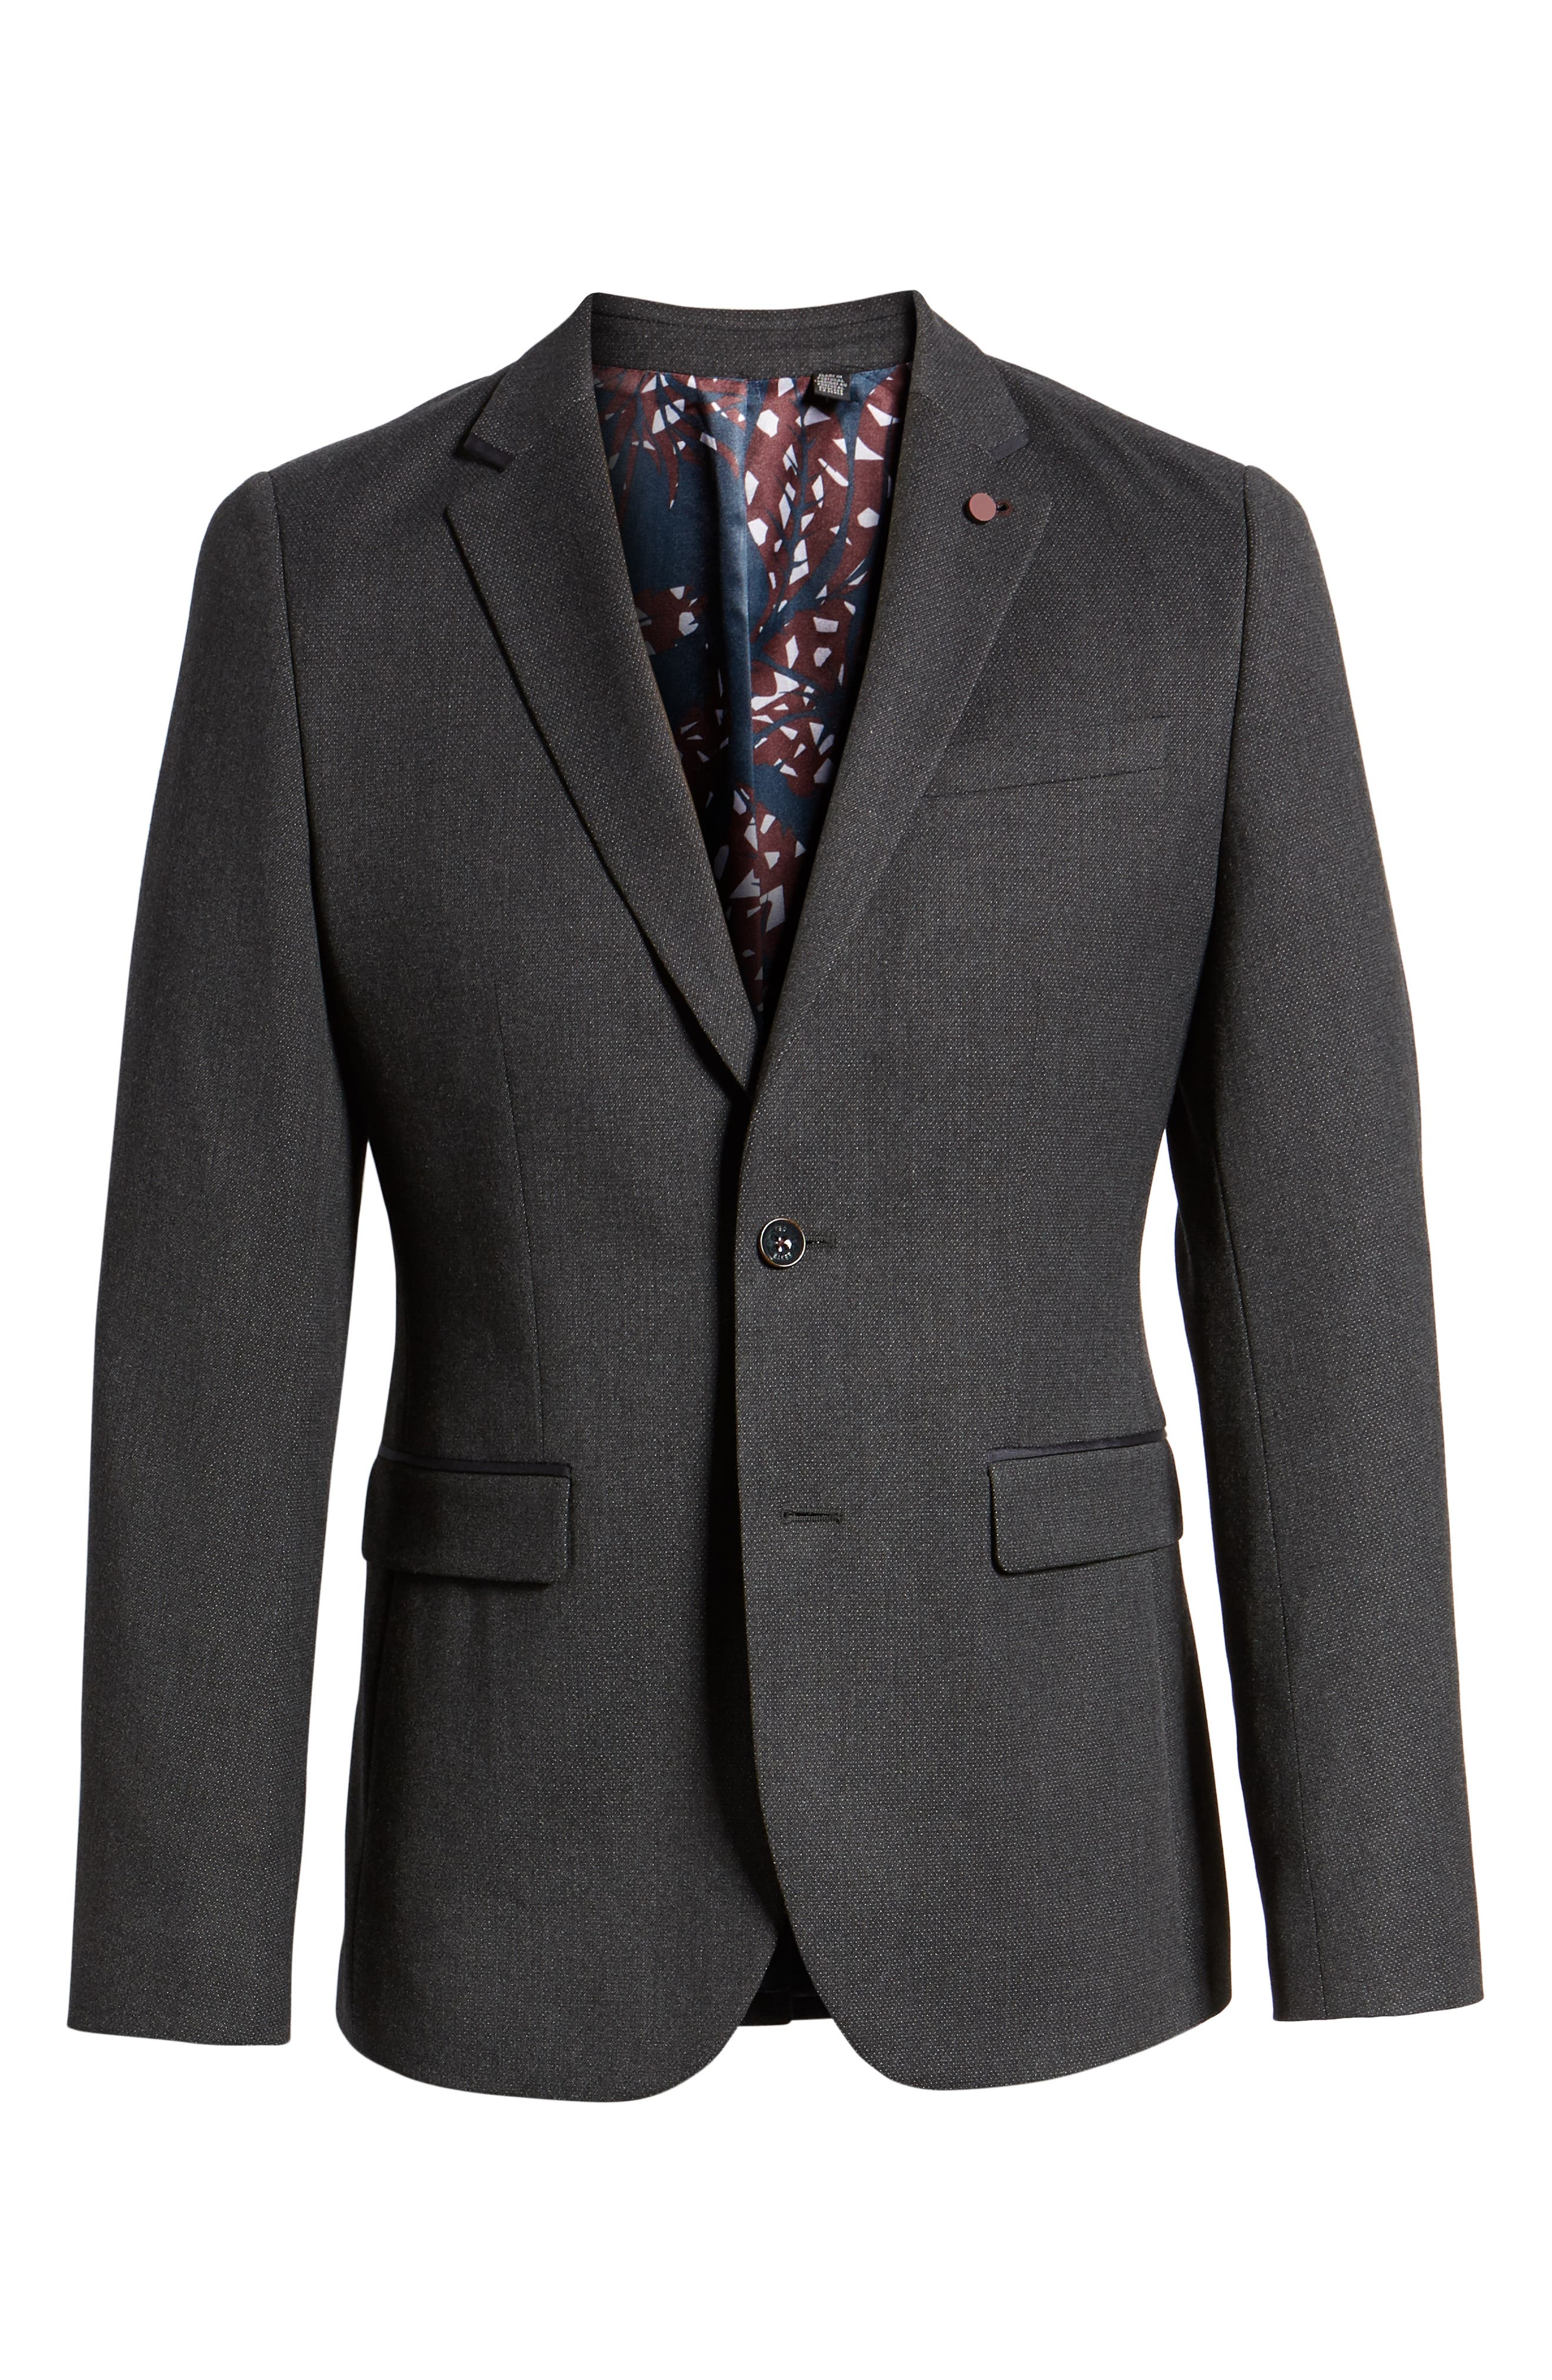 Hazlnut Trim Fit Sport Coat,                             Alternate thumbnail 5, color,                             020